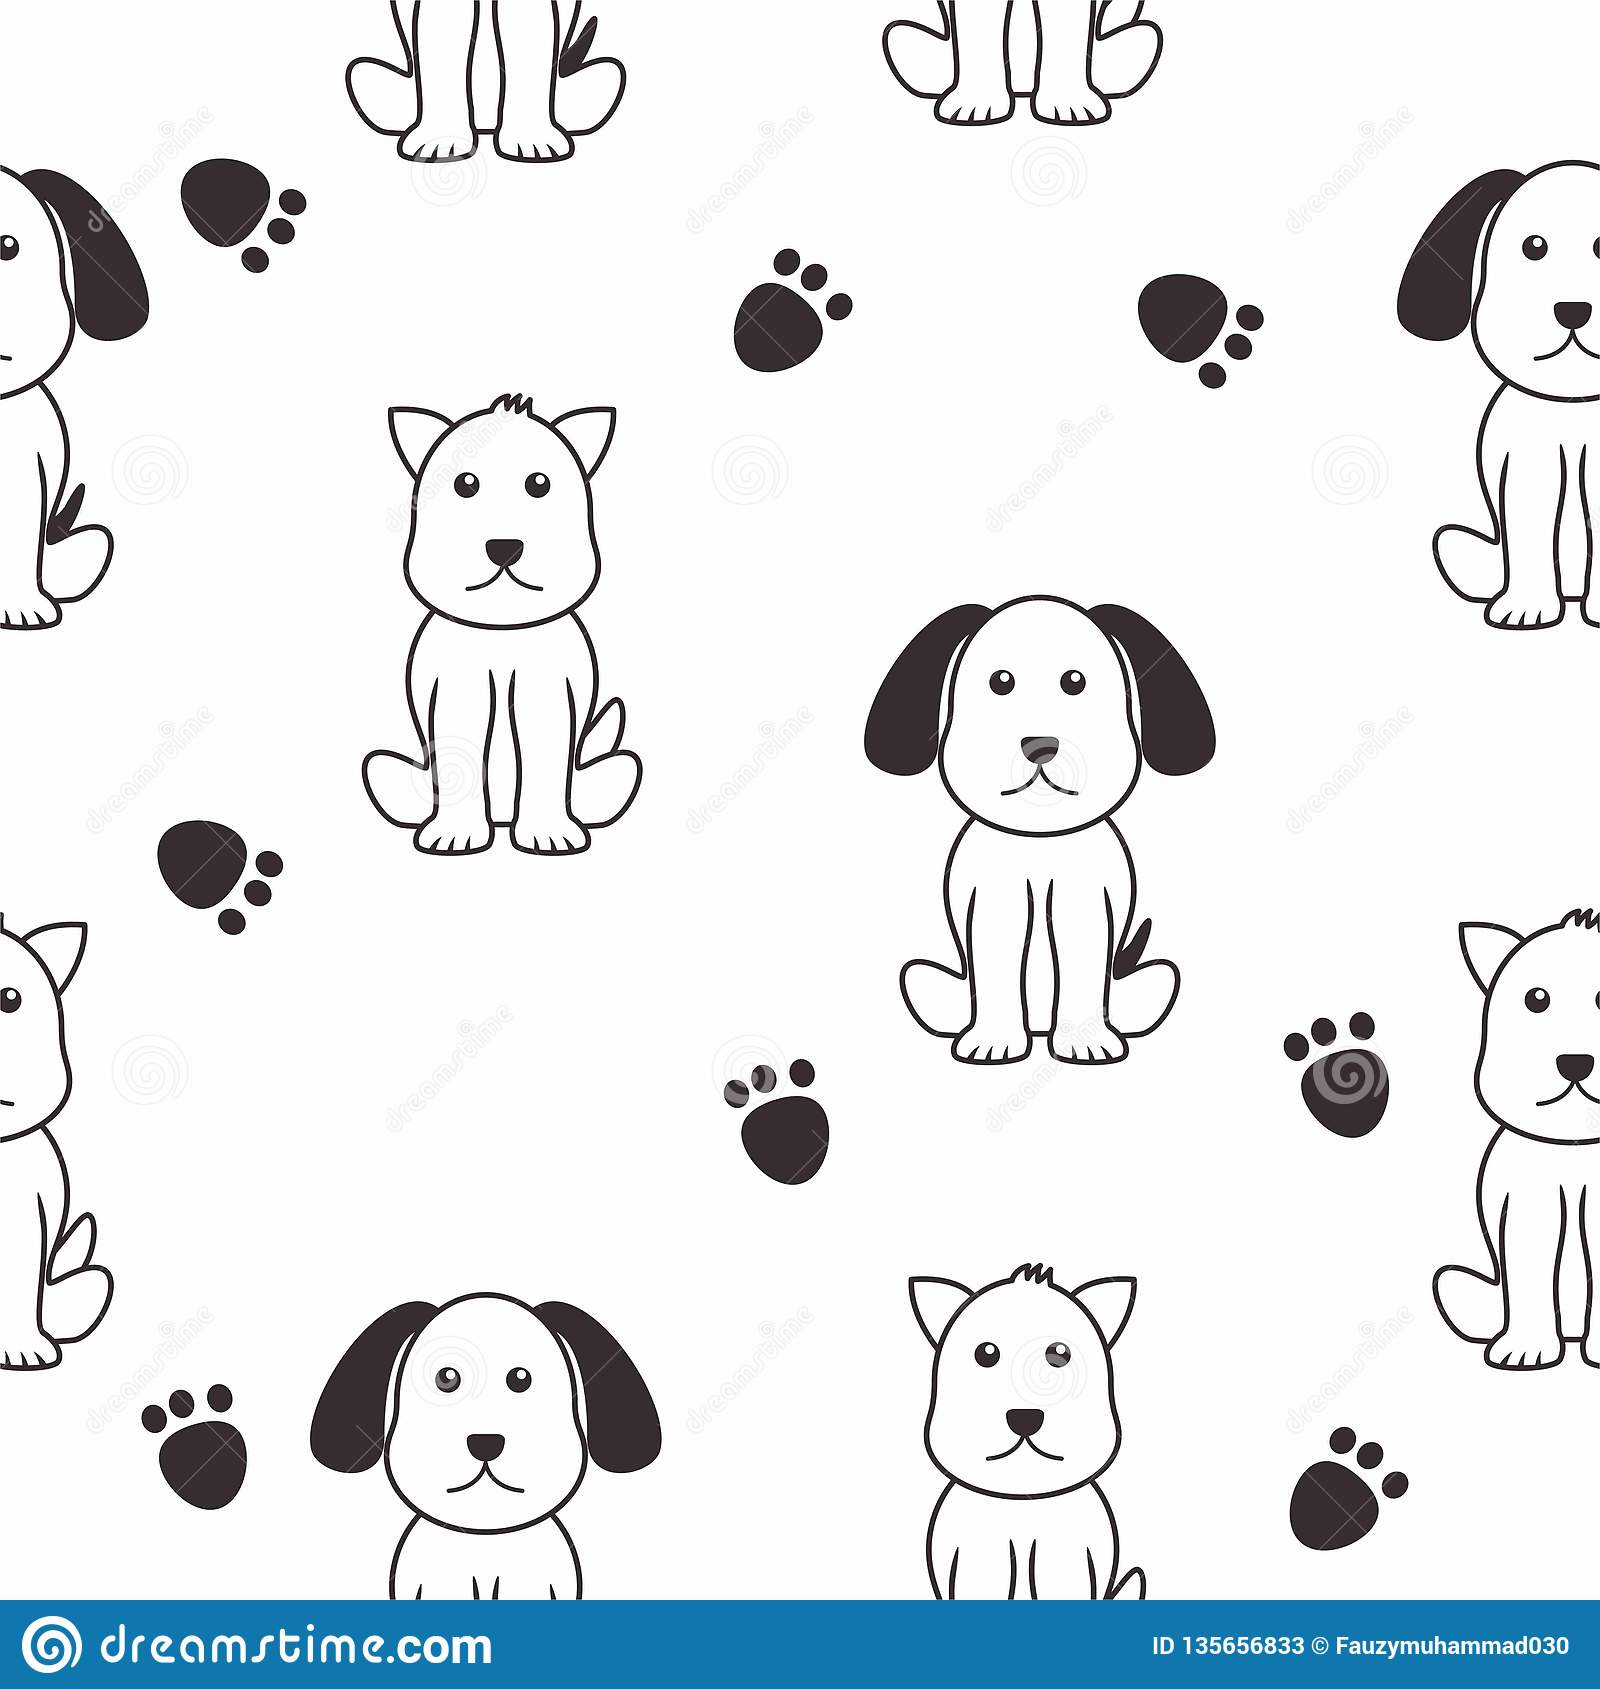 Cute Dog Seamless Pattern With Black And White Color Stock Vector Illustration Of Funny Green 135656833